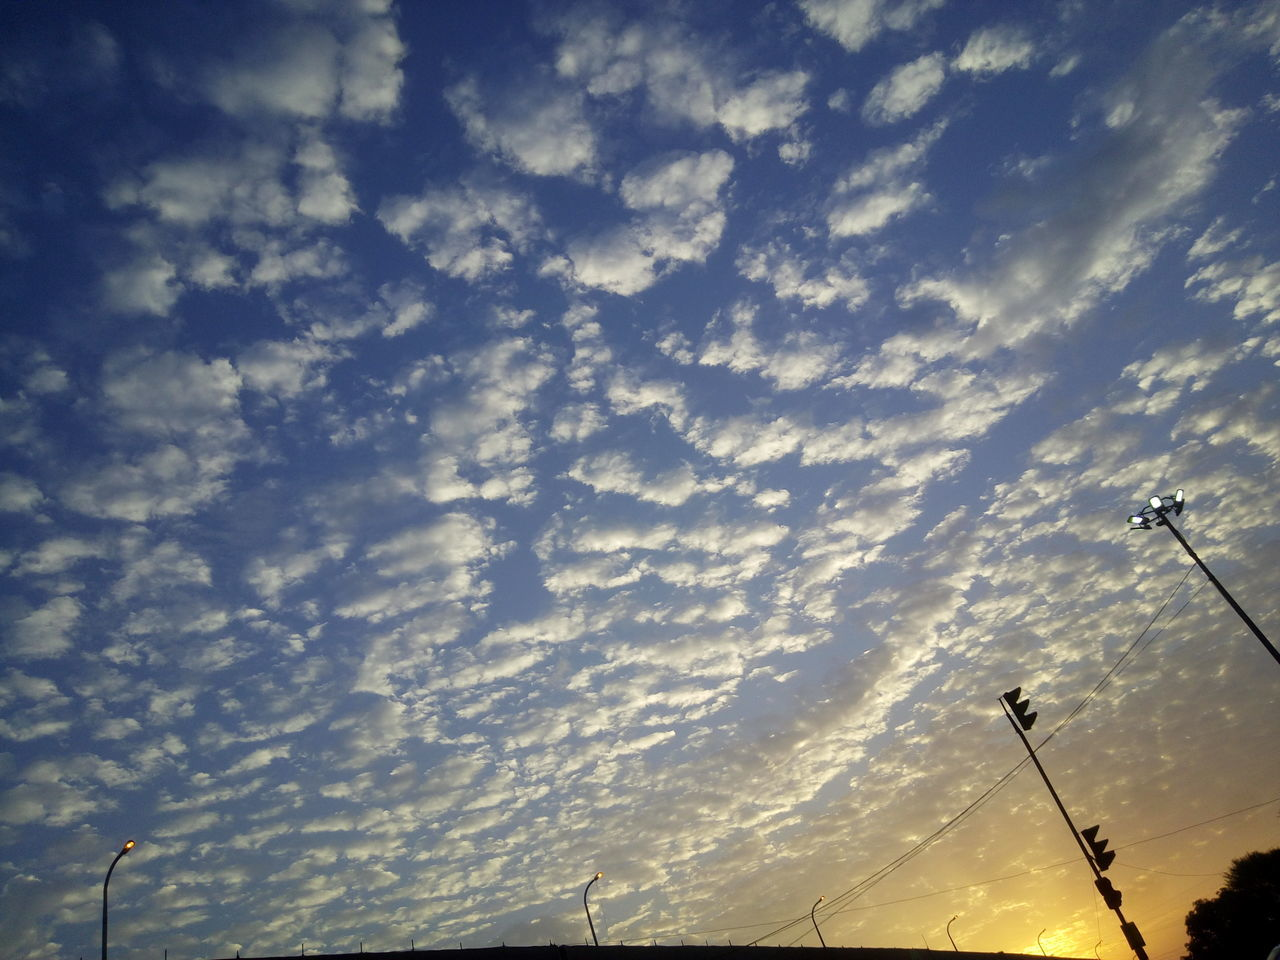 Low Angle View Cloud - Sky Sky Sunset No People Outdoors Nature Day Beauty In Nature Nature Tree Animal Text The City Light Food And Drink Mammal Transportation Railroad Station Platform Animal Wildlife Freshness Animal Themes Grass Animals In The Wild Close-up Adapted To The City